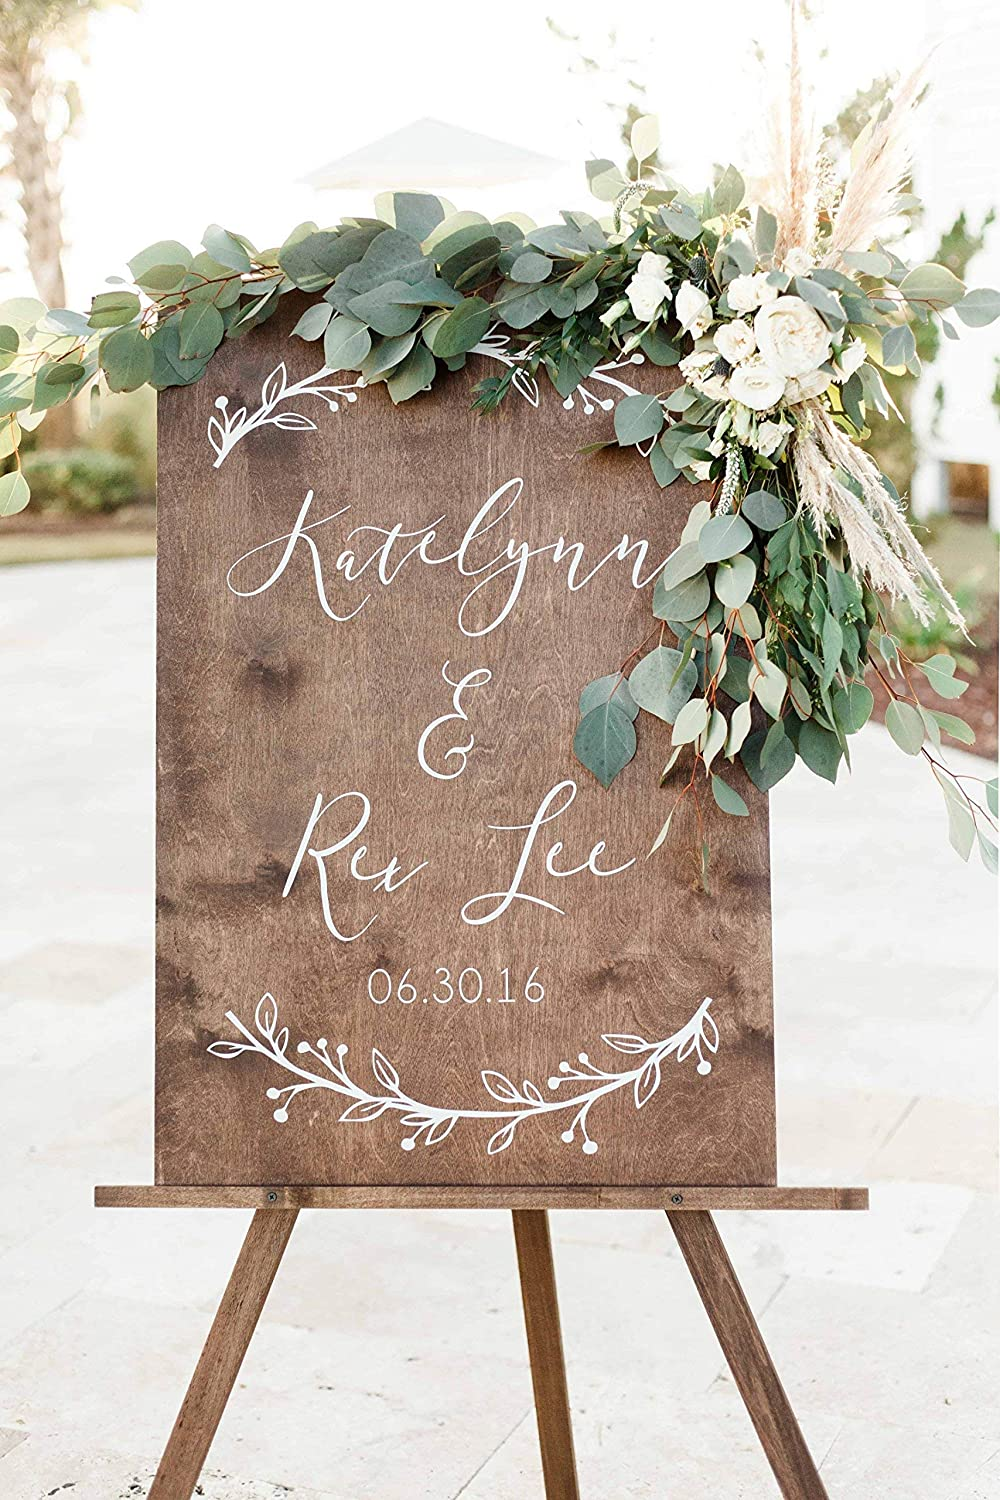 Amazon Com Floral Wedding Welcome Sign Custom Wedding Decor Display Date Couple Name Personalized Welcome Wedding Sign Weathered Oak Stain Wood Sign Wedding Reception Decorations Handmade